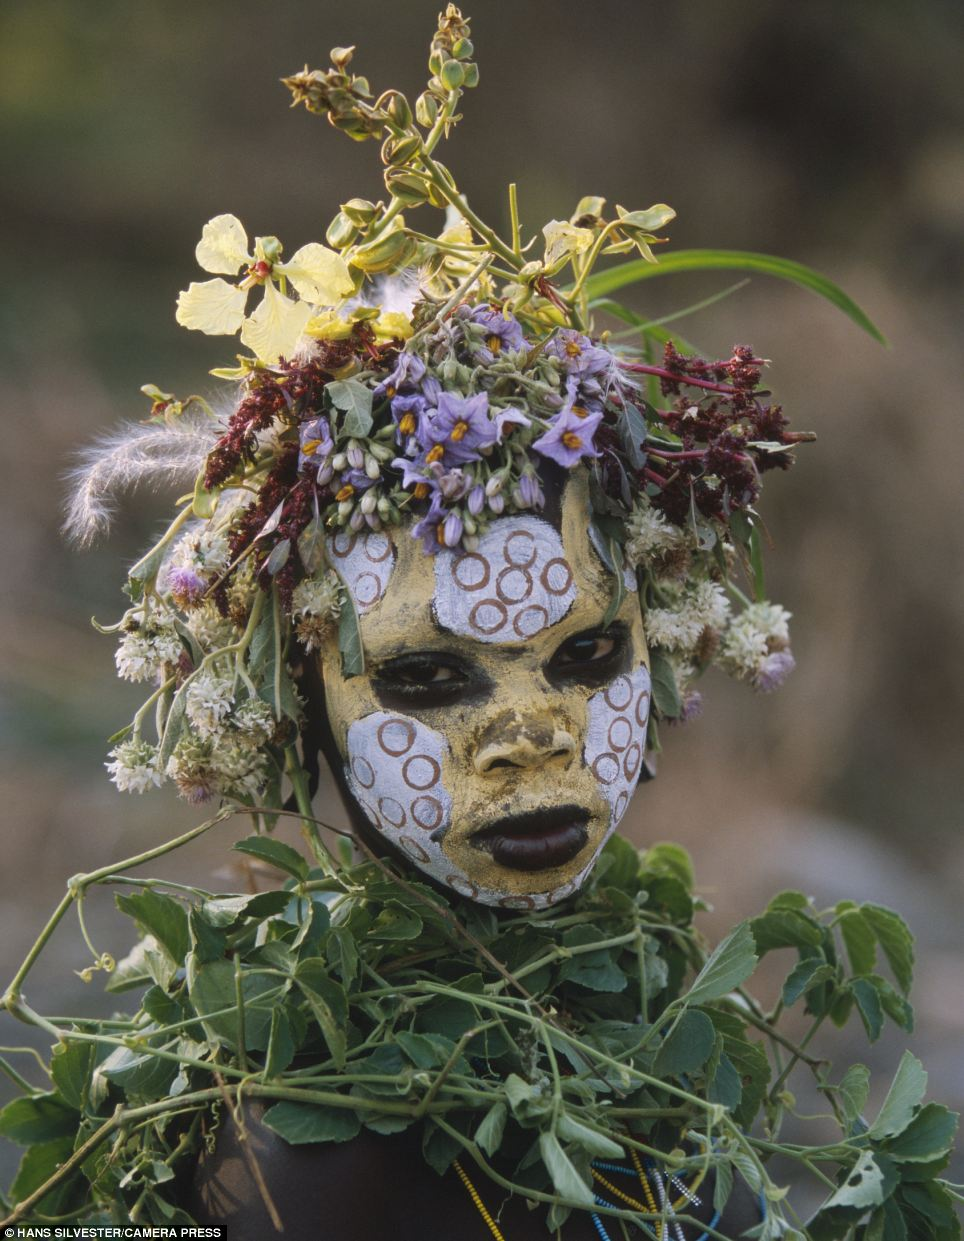 Celebration: Photographer Hans Silvestre described the paint and head dresses worn by his subjects as a 'kind of coquetry, seduction, pride and celebration'